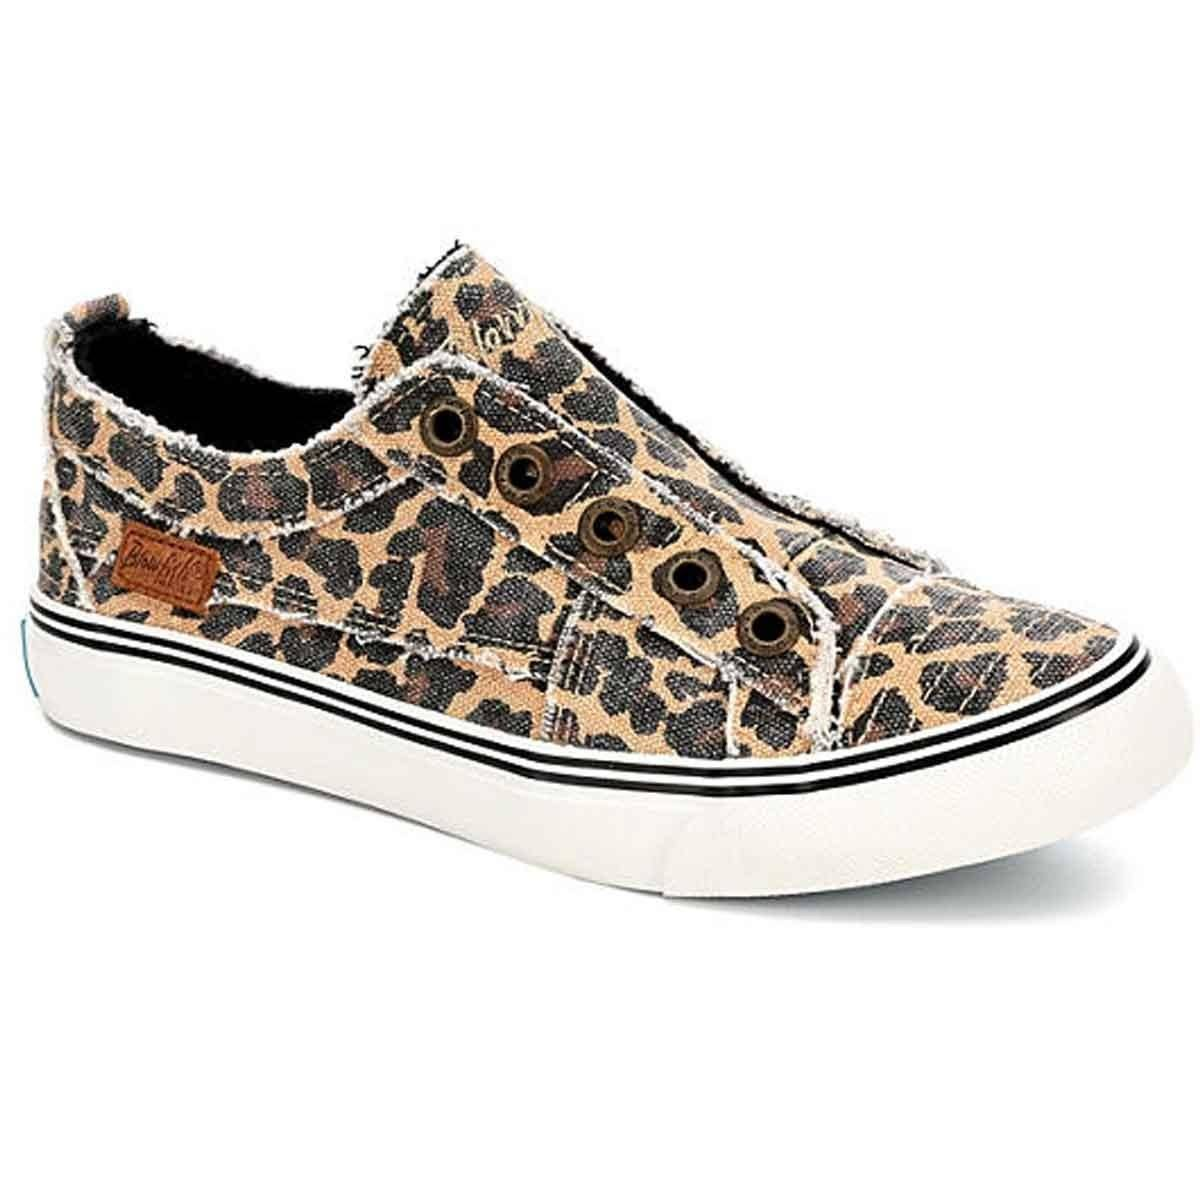 Blowfish Natural Women's Play Sneakers